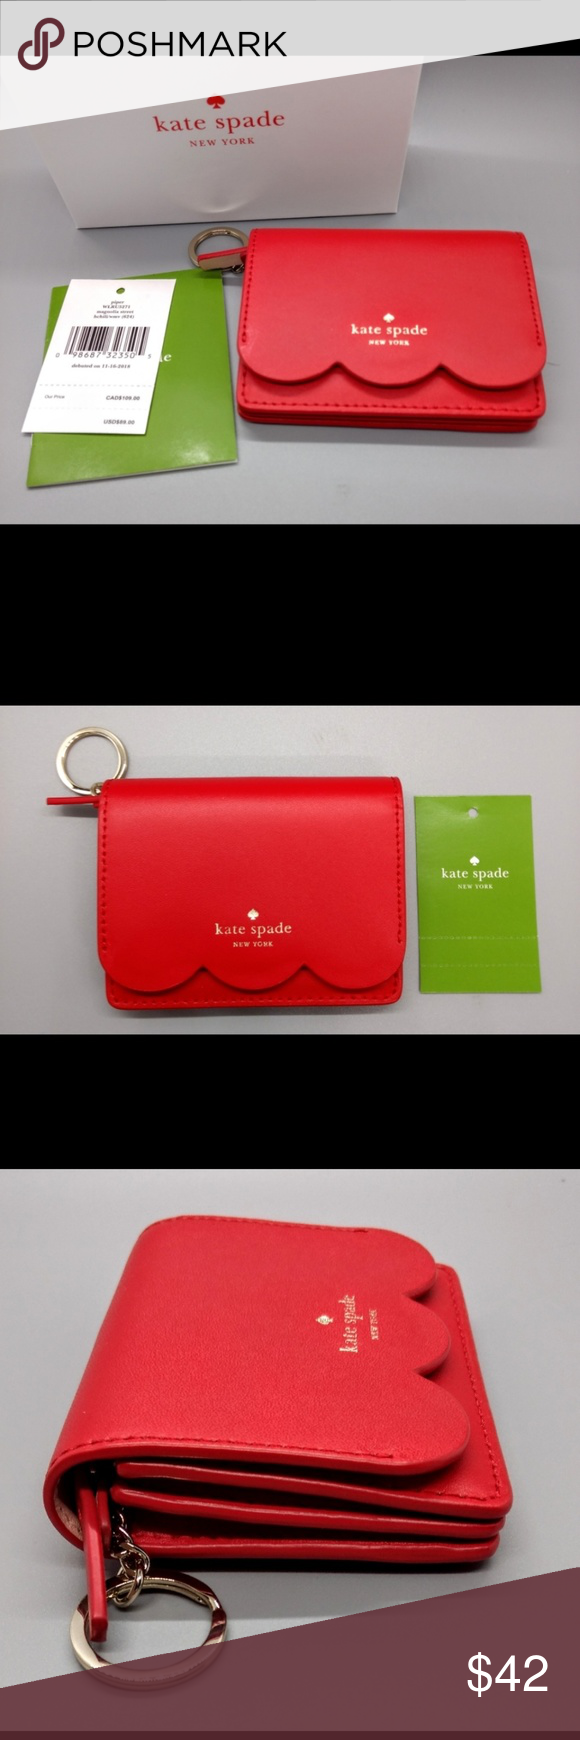 598bd3c919e0 NWT Kate Spade Magnolia Street Piper Wallet Brand new with tag and ...